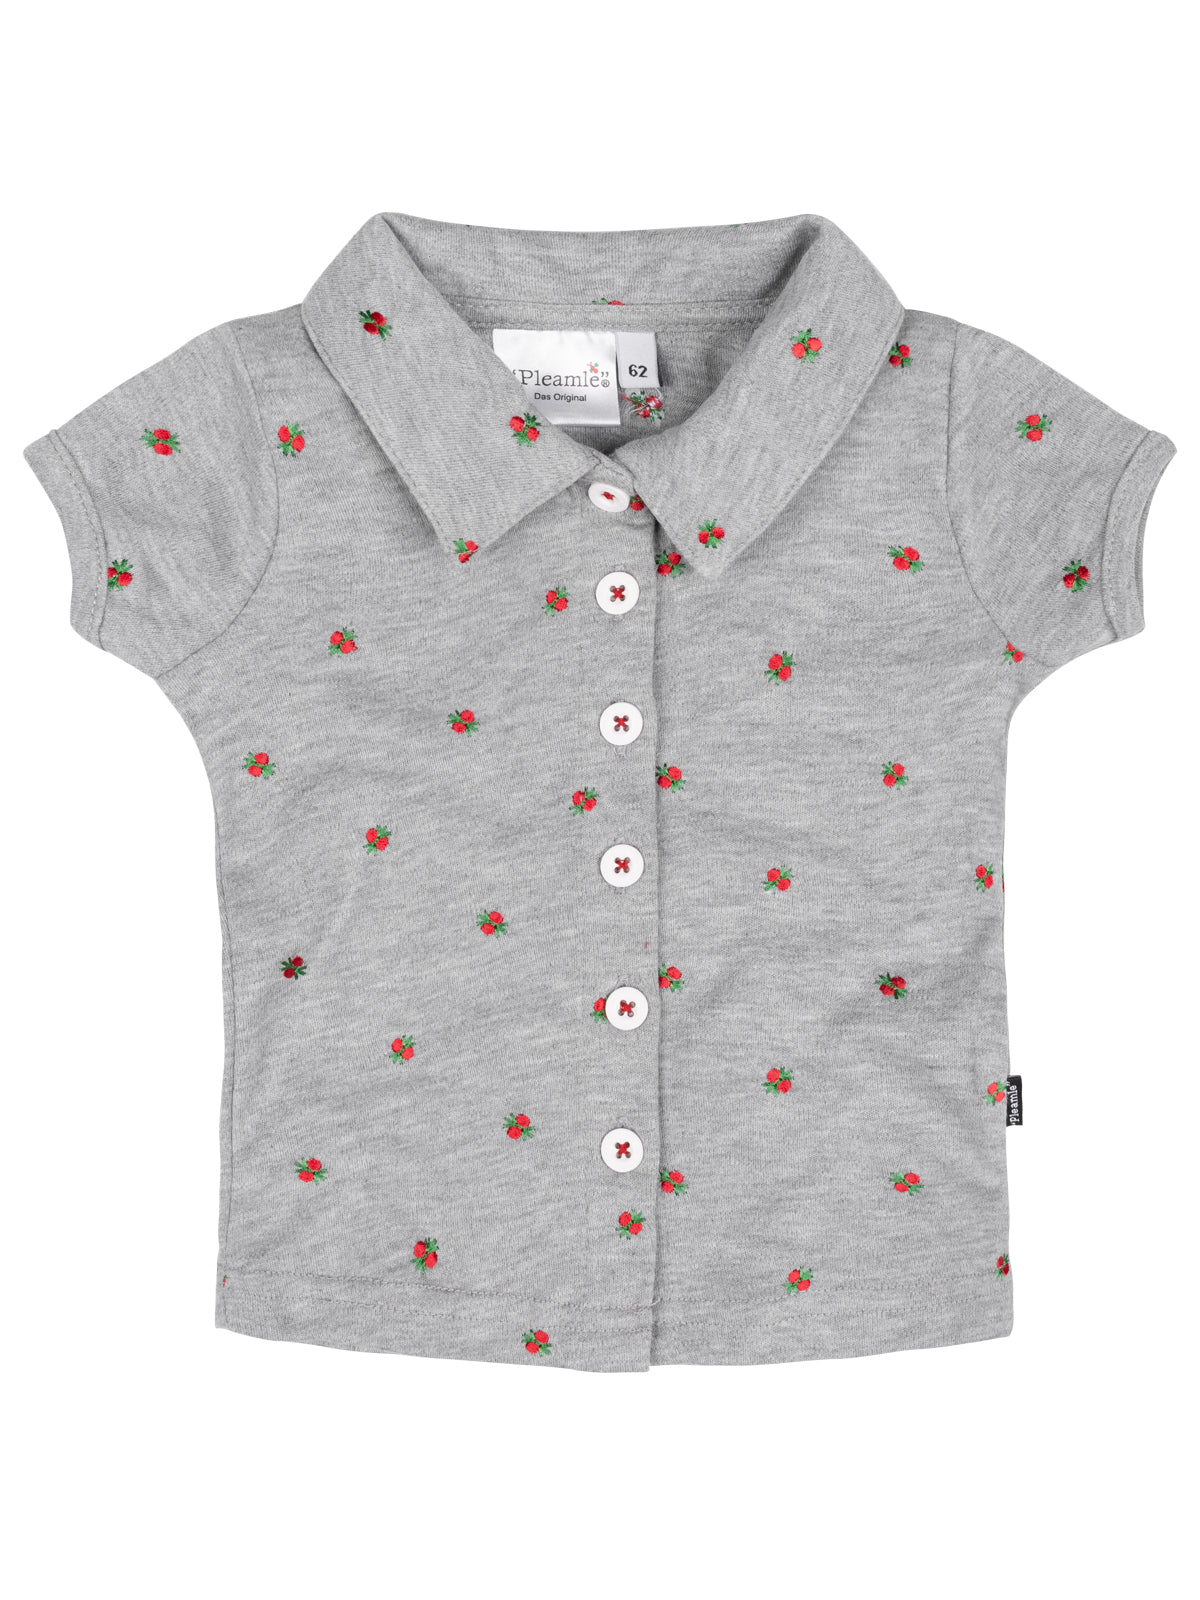 Pleamle Baby Polo Graumelé